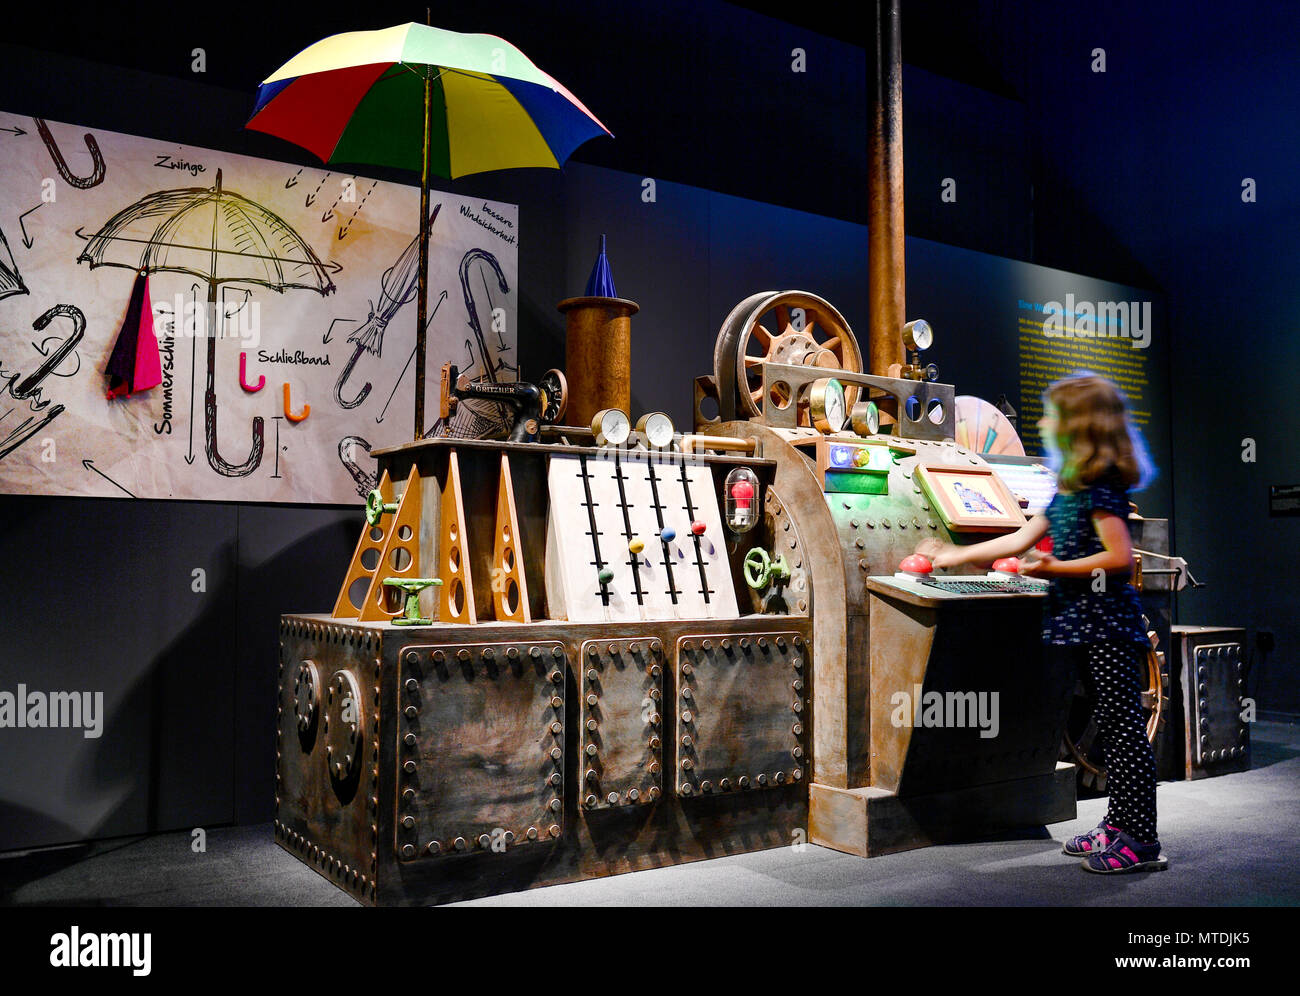 """30 May 2018, Germany, Speyer: Ida stands beside a replica of the umbrella machine from the film """"Sams im Glueck"""" (lit. """"Sams in luck"""") at the exhibition """"Das Sams und die Helden der Kinderbuecher"""" (lit. """"Sams and the heroes of childrens' books"""") at the Historical Museum of Rhineland-Palatinate. The exhibition is running from 01 June 2018 to 06 January 2019. Photo: Uwe Anspach/dpa Stock Photo"""